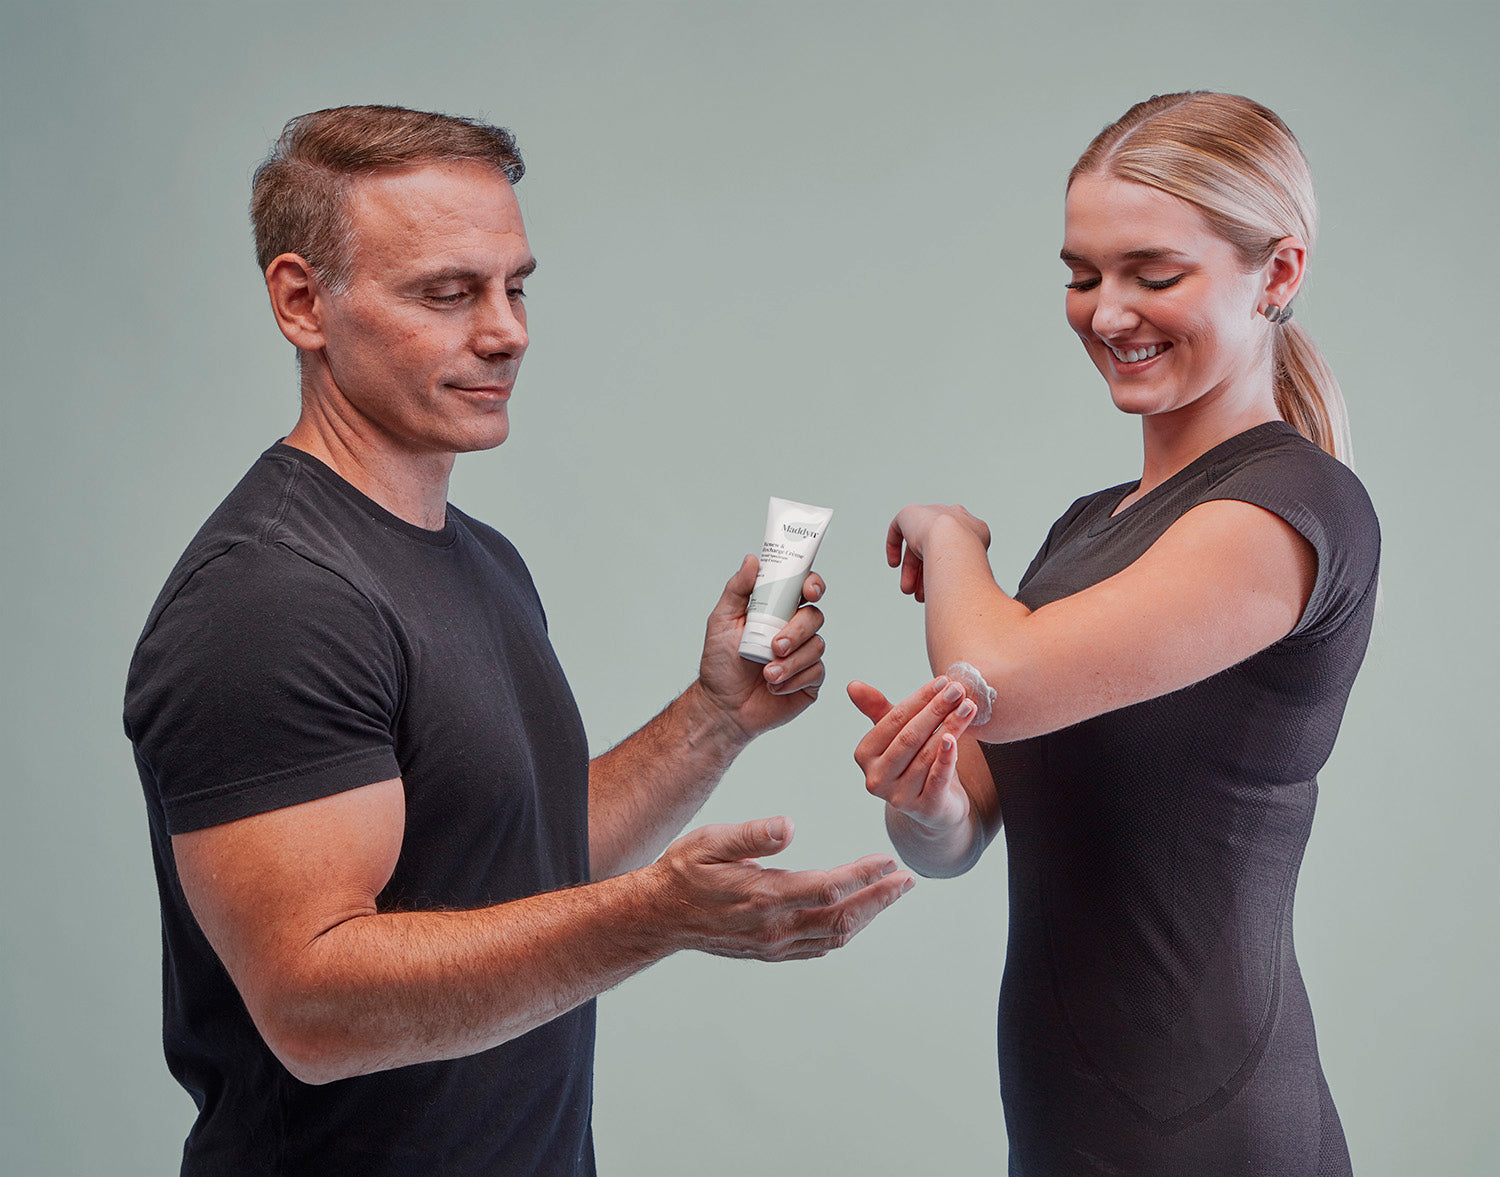 Man giving woman Maddyn topical CBD cream for sore elbow